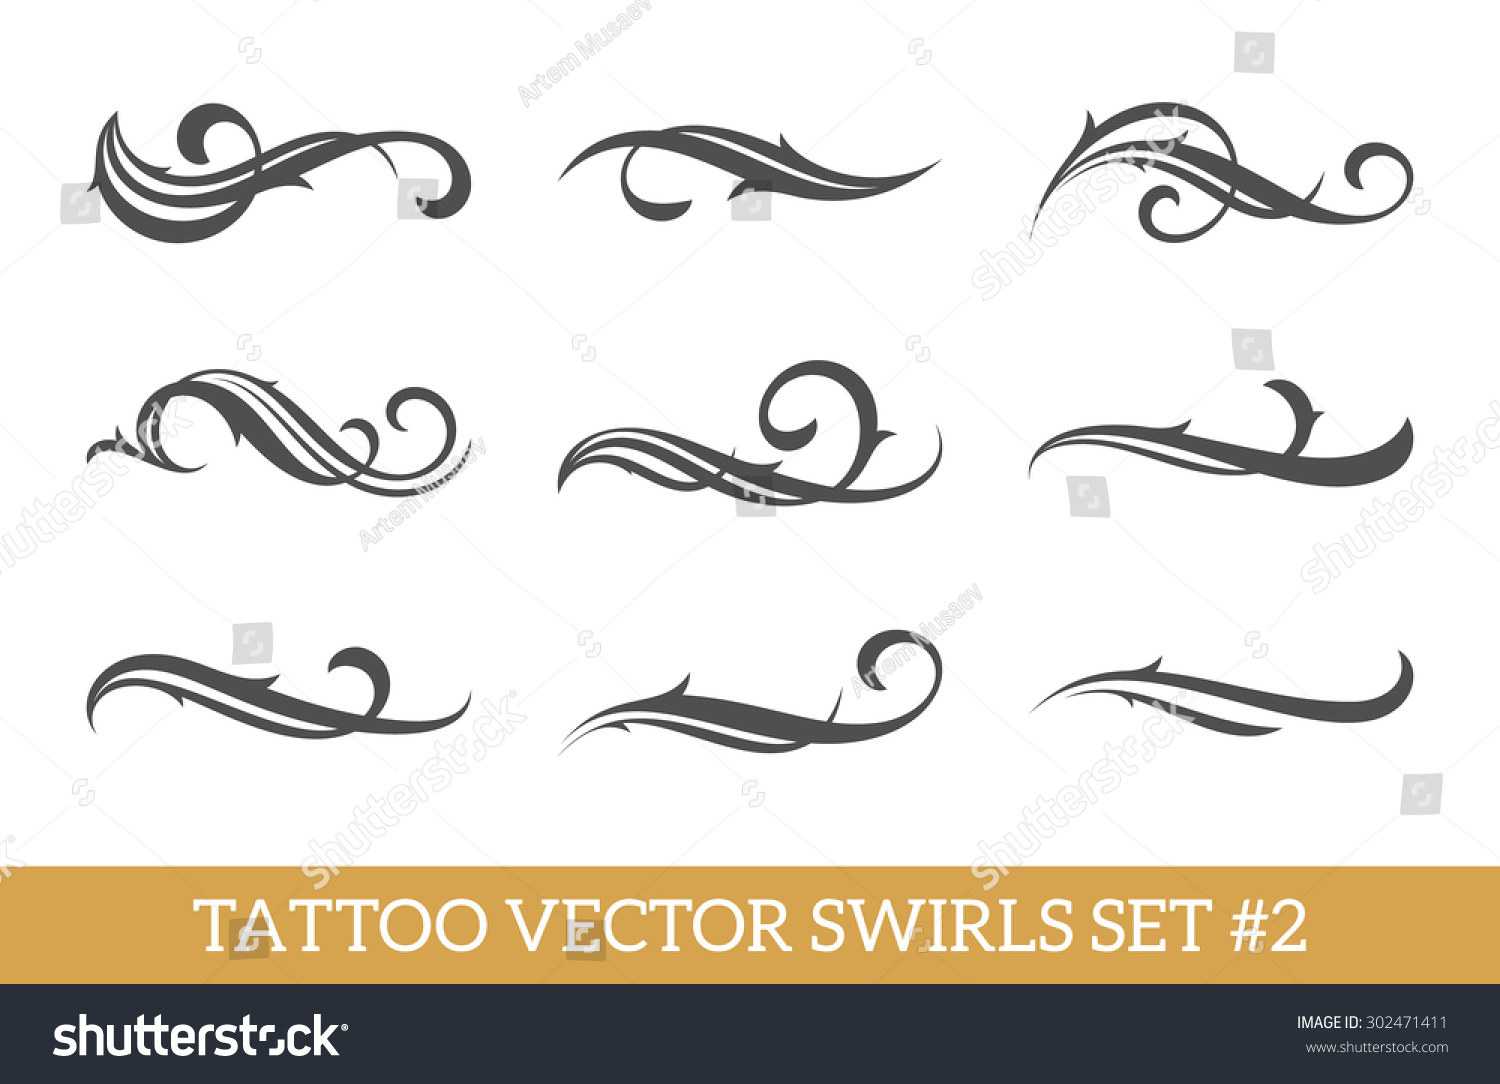 Set Of Nine Vector Tattoo Style Swirls For Cool Art Or